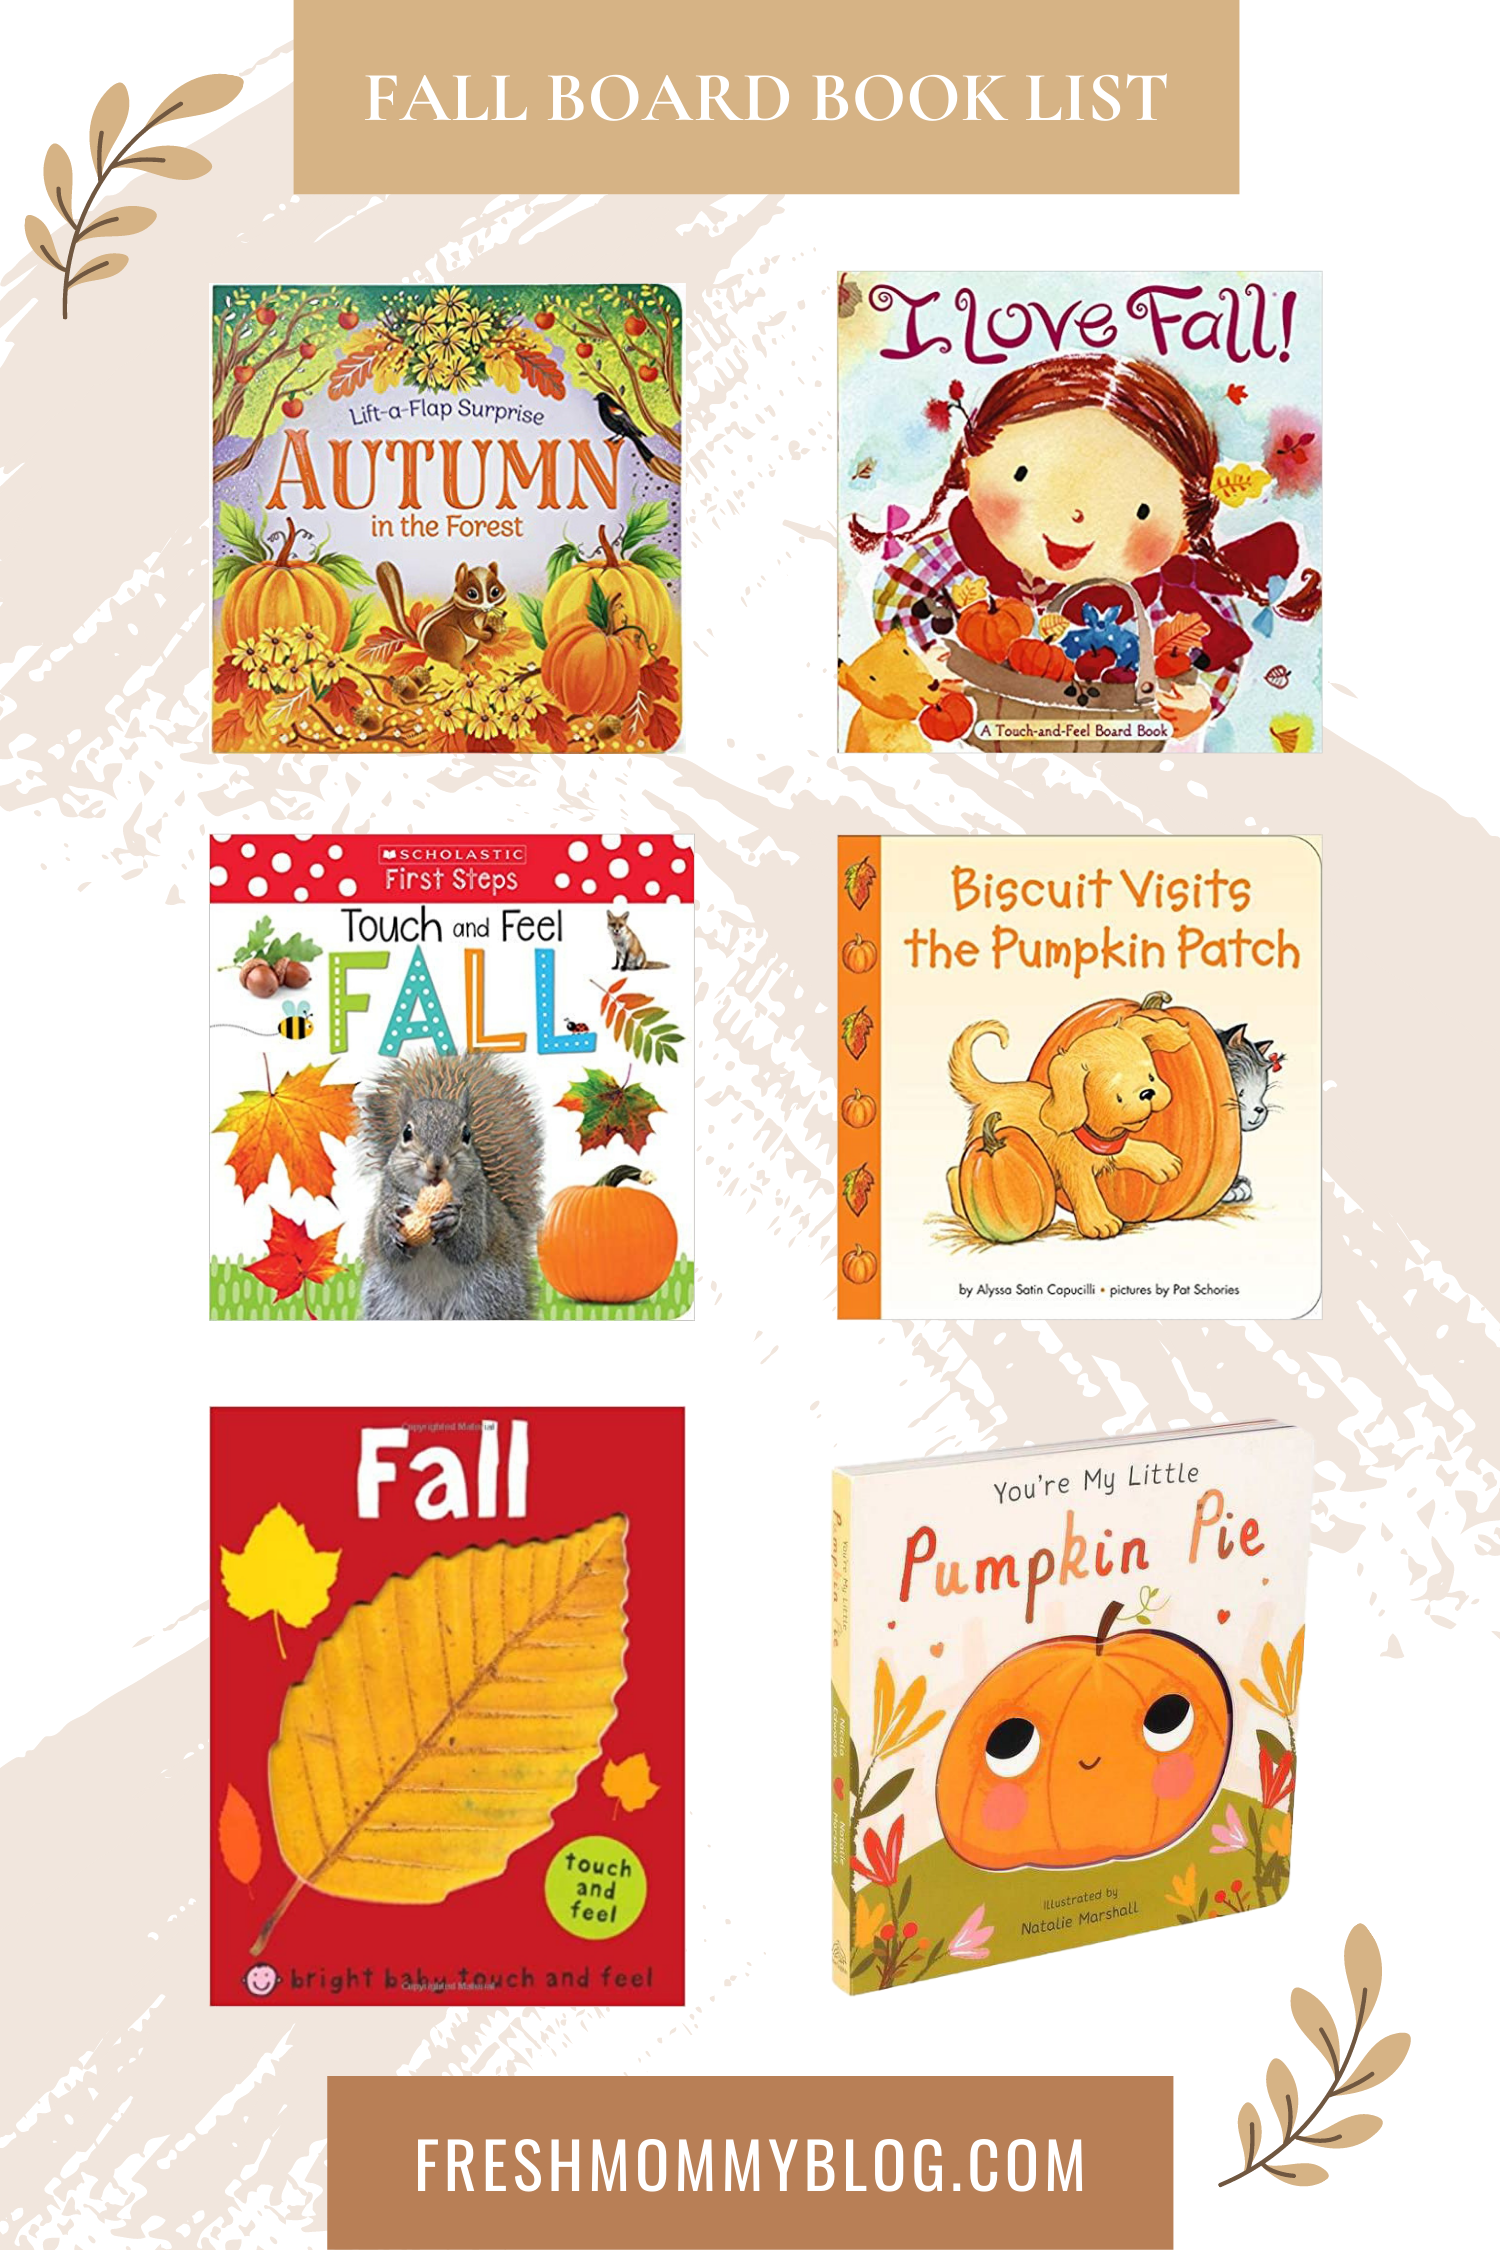 If you're looking for the perfect fall childrens books, look no further! The roundup of our top fall kids books has you covered, whether you're looking for something to entertain your toddler or a fall book list to keep your older kids busy all autumn long. Fall board books for toddlers.